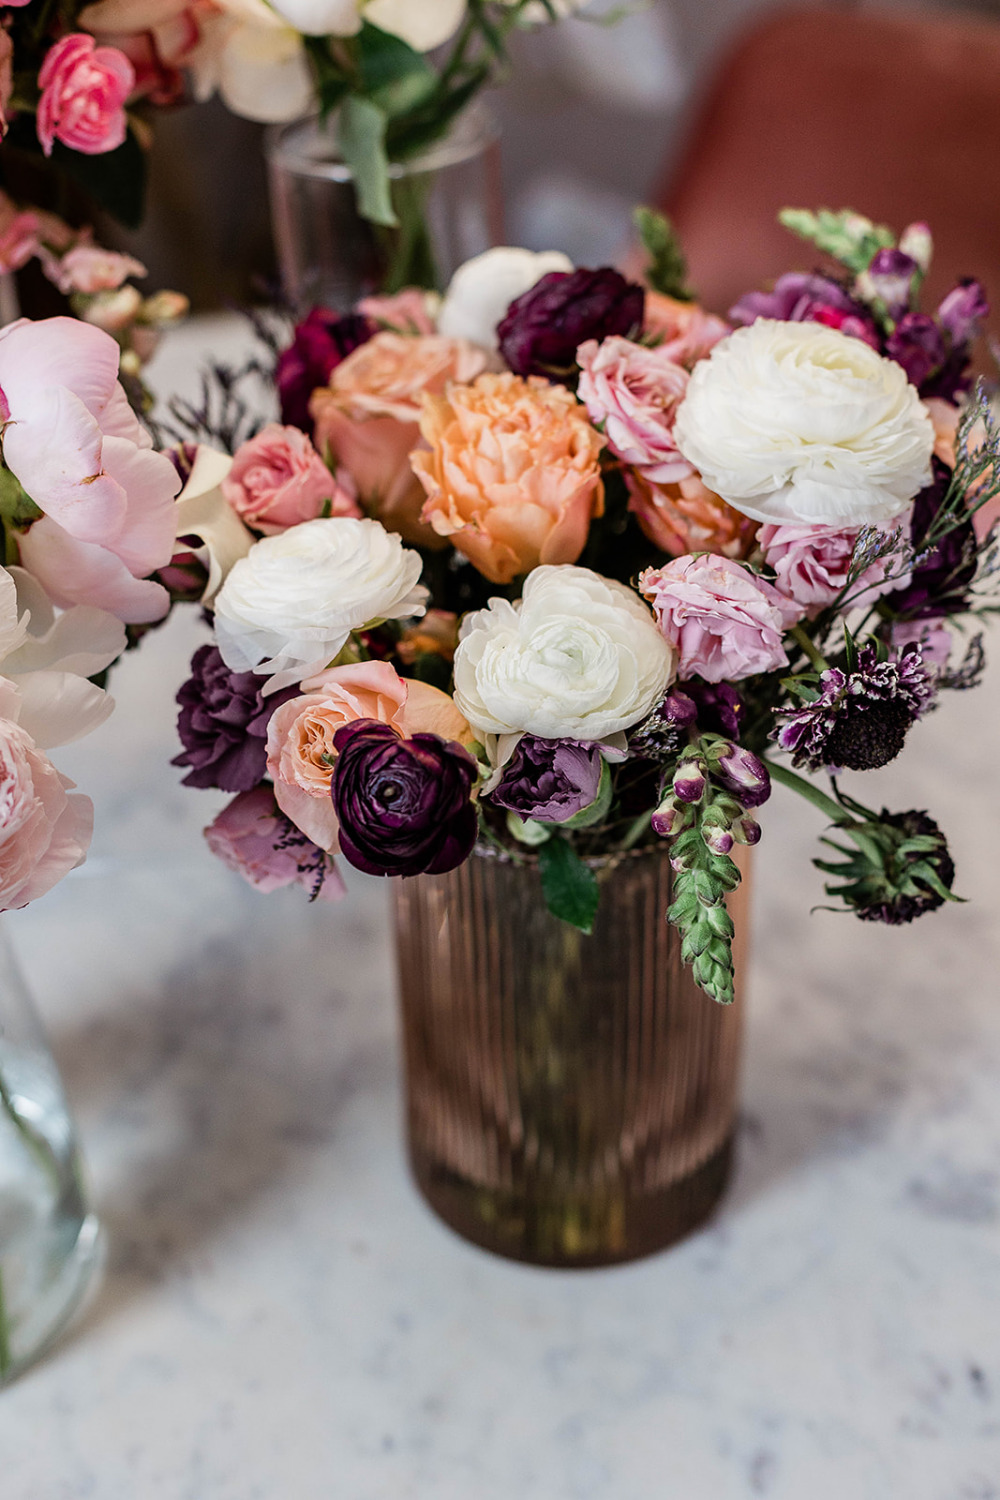 Urban Stems, Floral Arranging, Decorating Office, Flowers in vase, Girl working in office, Home Office Decor, LC Lauren Conrad